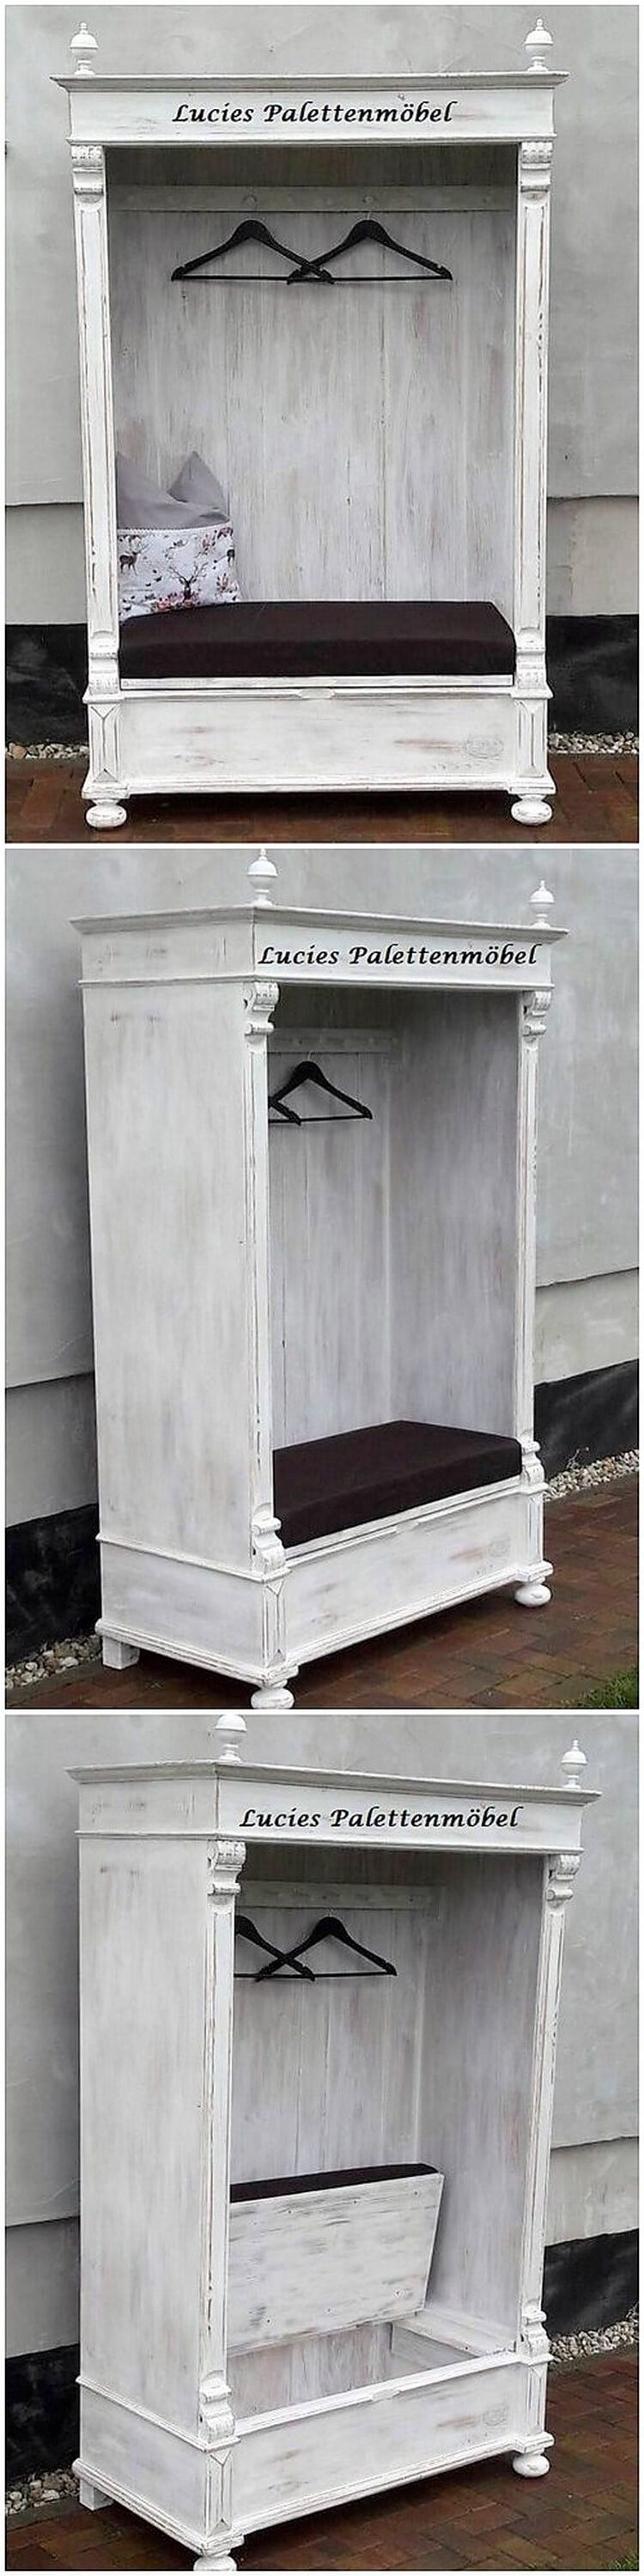 Pallet Closet with Seat